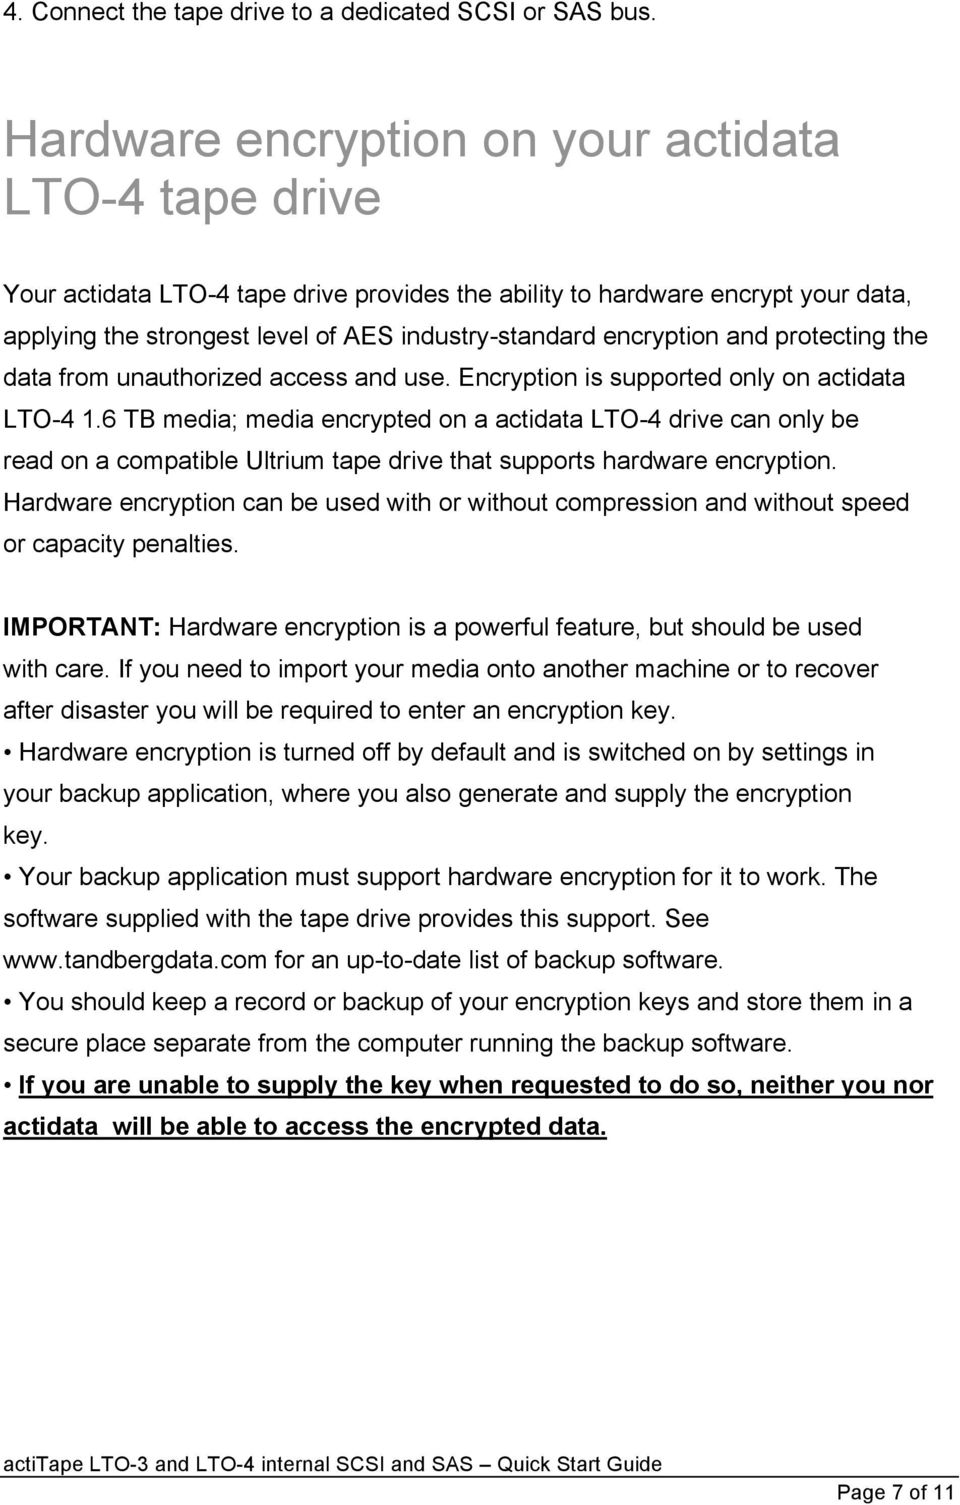 encryption and protecting the data from unauthorized access and use. Encryption is supported only on actidata LTO-4 1.